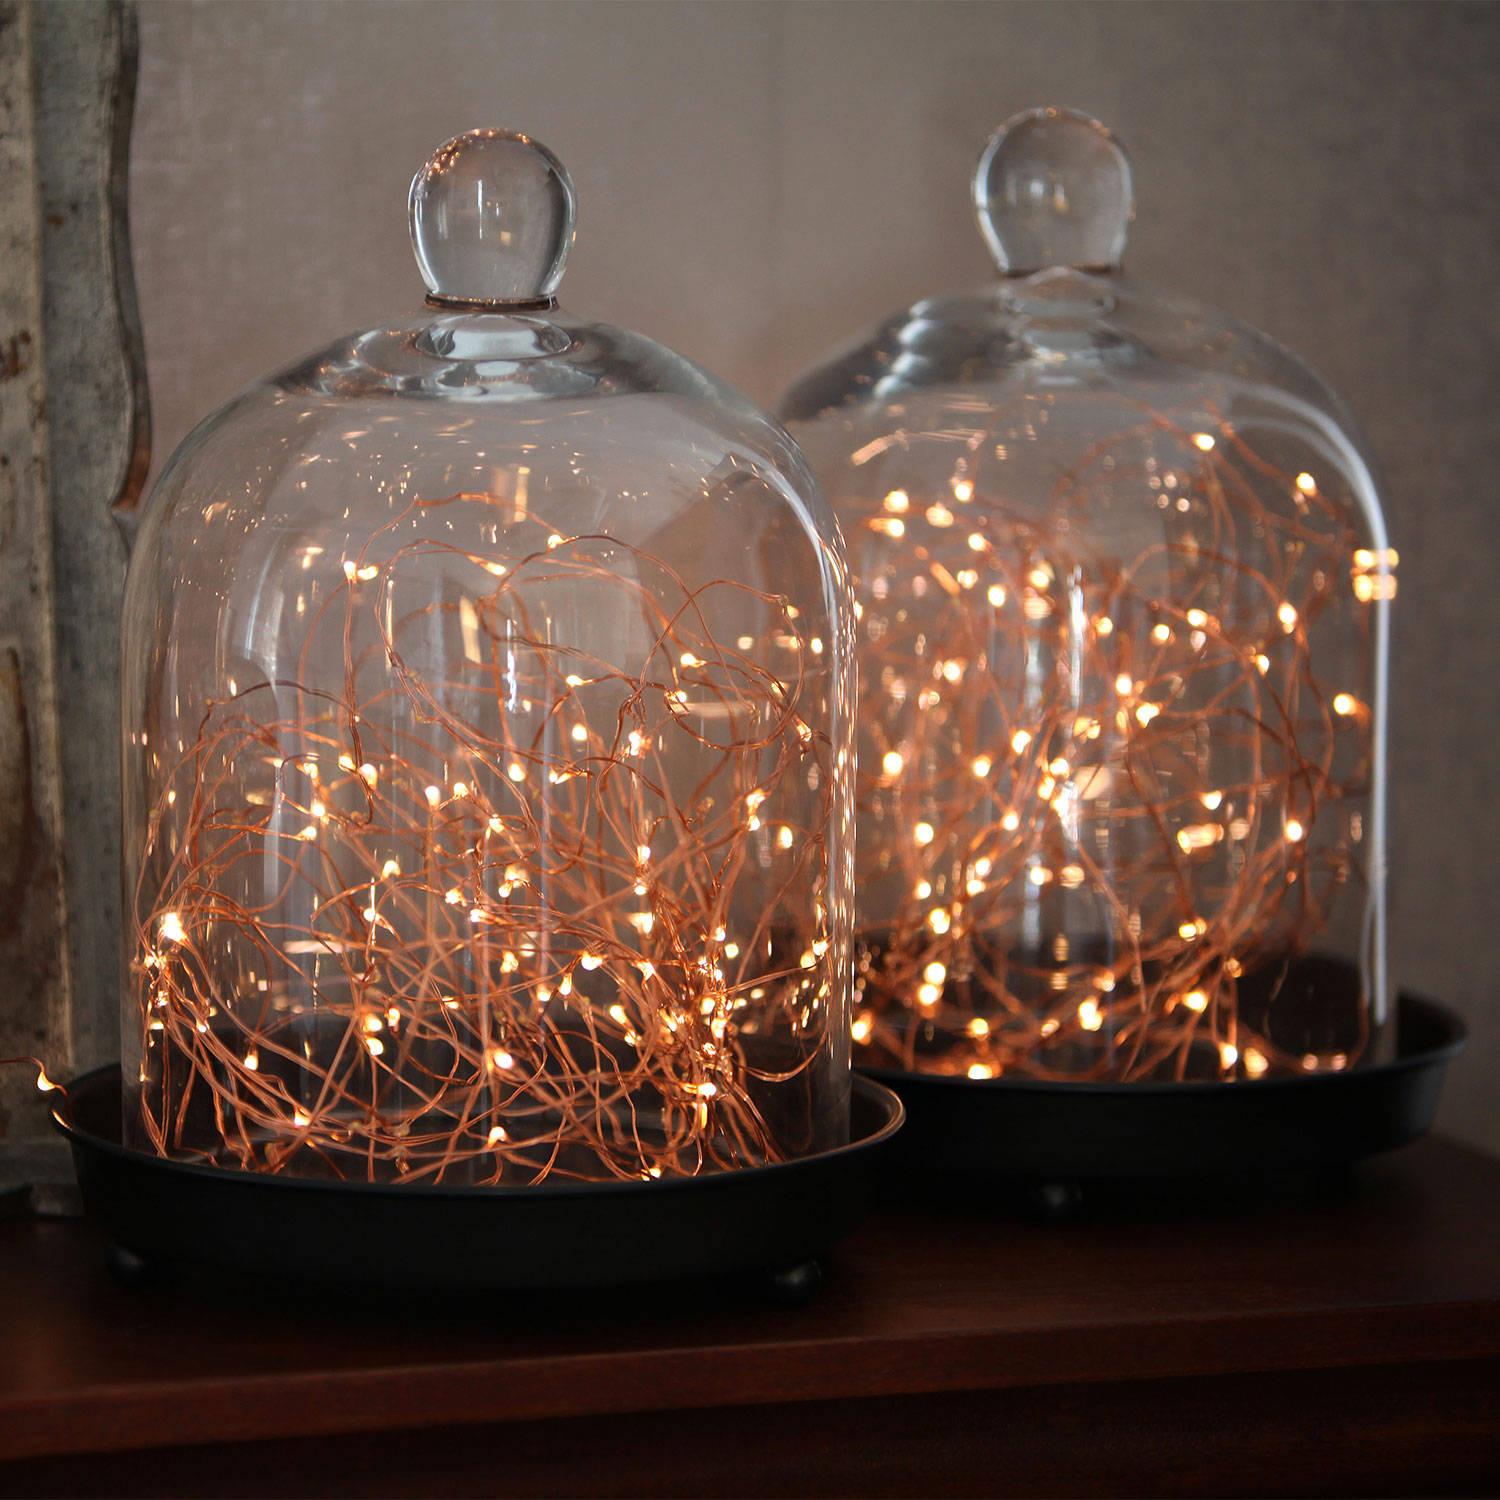 String Lights With No Plug : Lights.com String Lights Fairy Lights 300 Warm White Starry LED Copper Wire Plug-in String ...